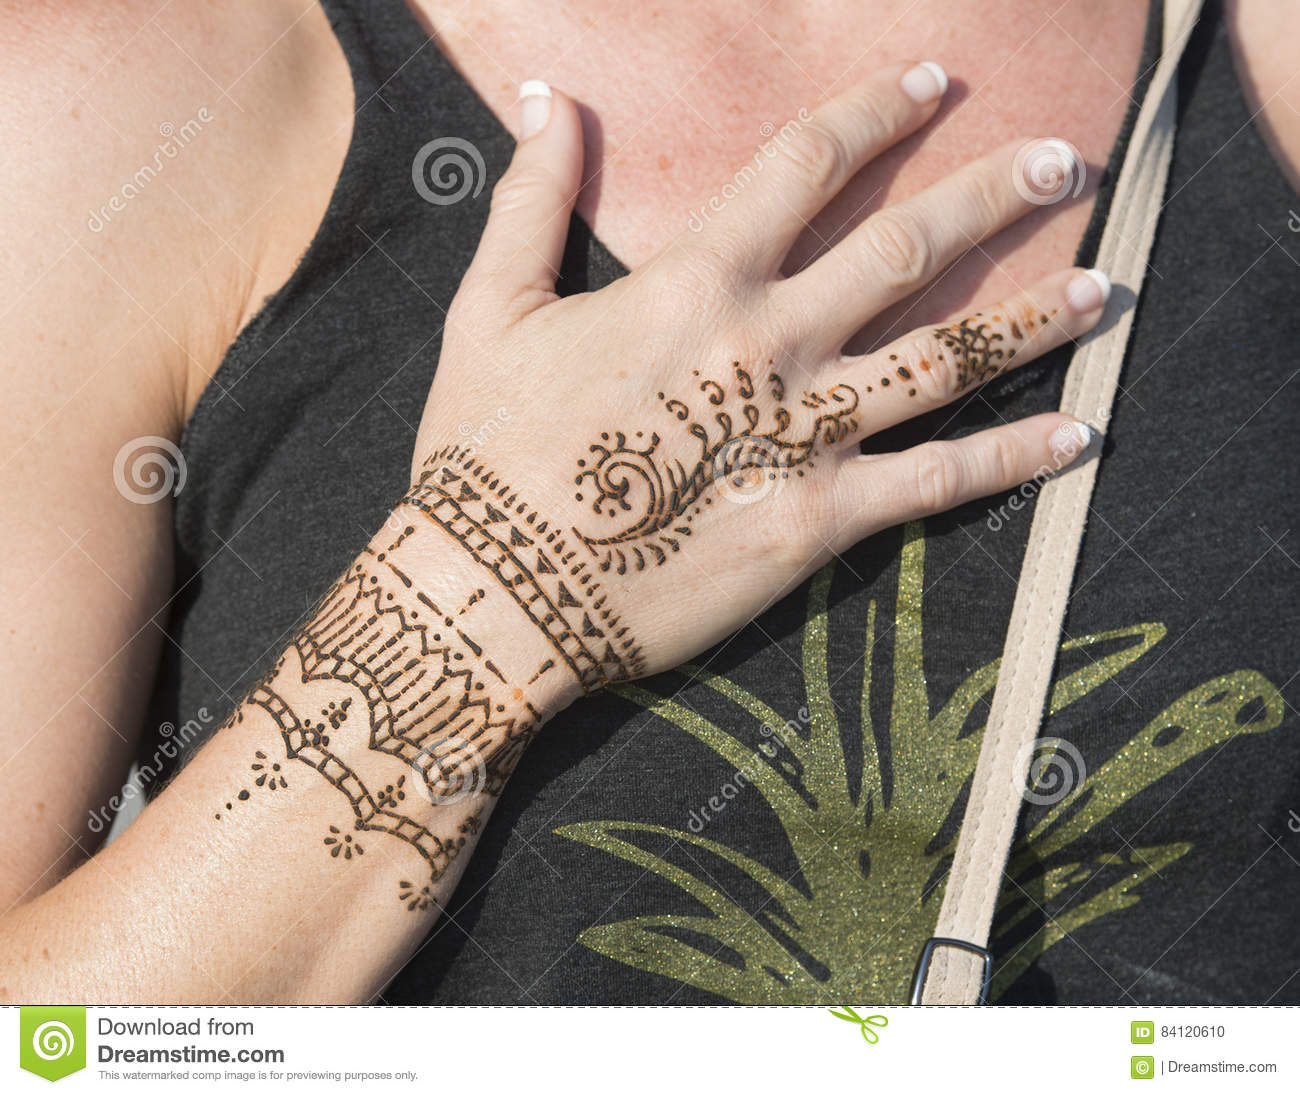 31ff97ef4 A woman wearing a tank top has a temporary Henna design painted on her hand  at Venice Beach, California. Her right hand is extended and placed across  her ...